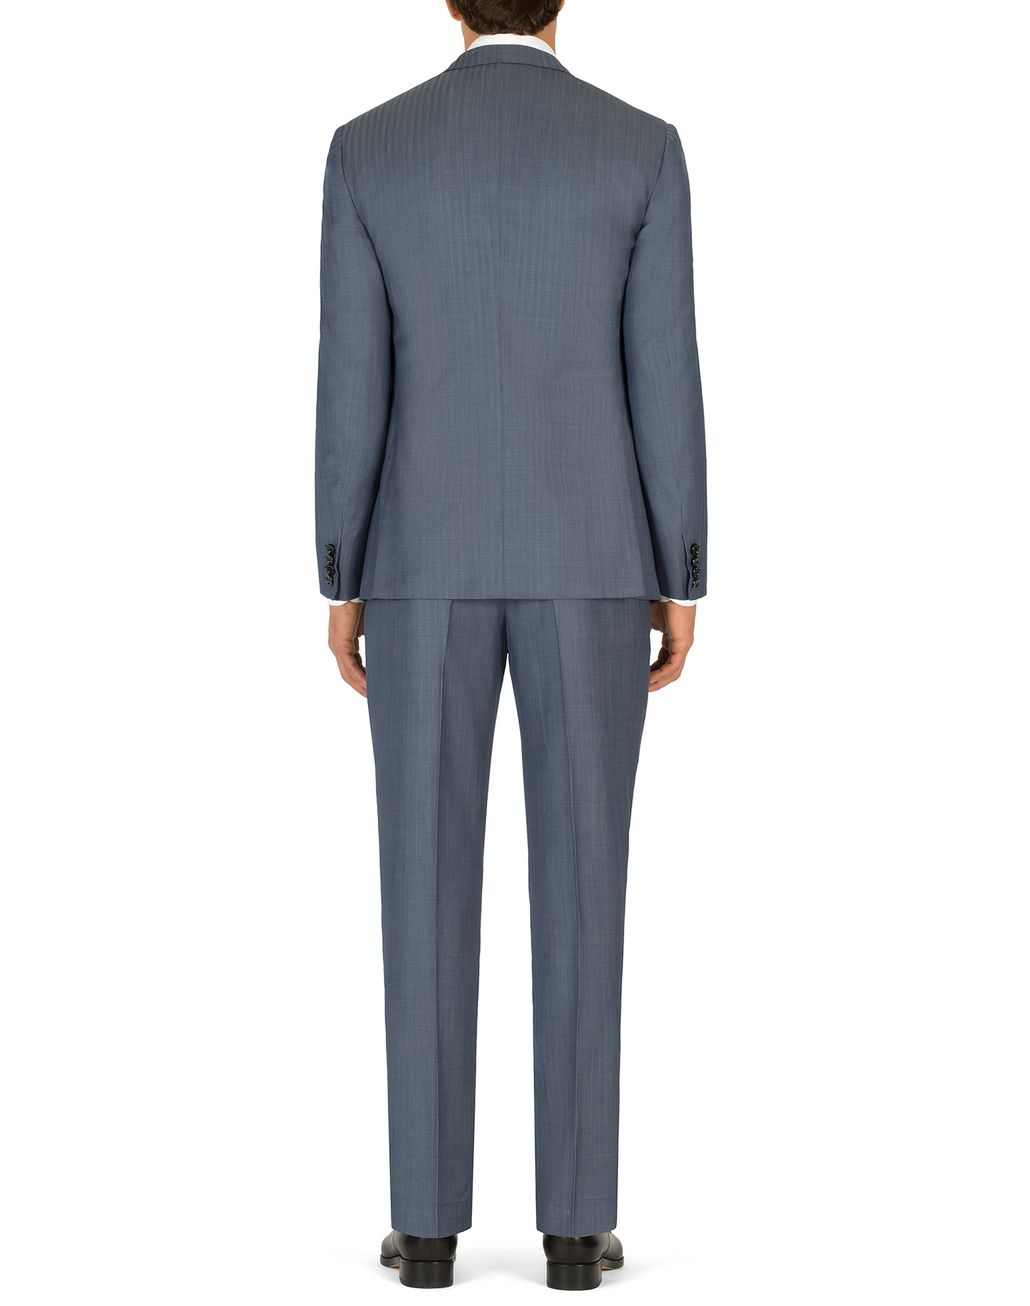 BRIONI Light Blue Micro-Herringbone Ravello Suit   Suits & Jackets Man d